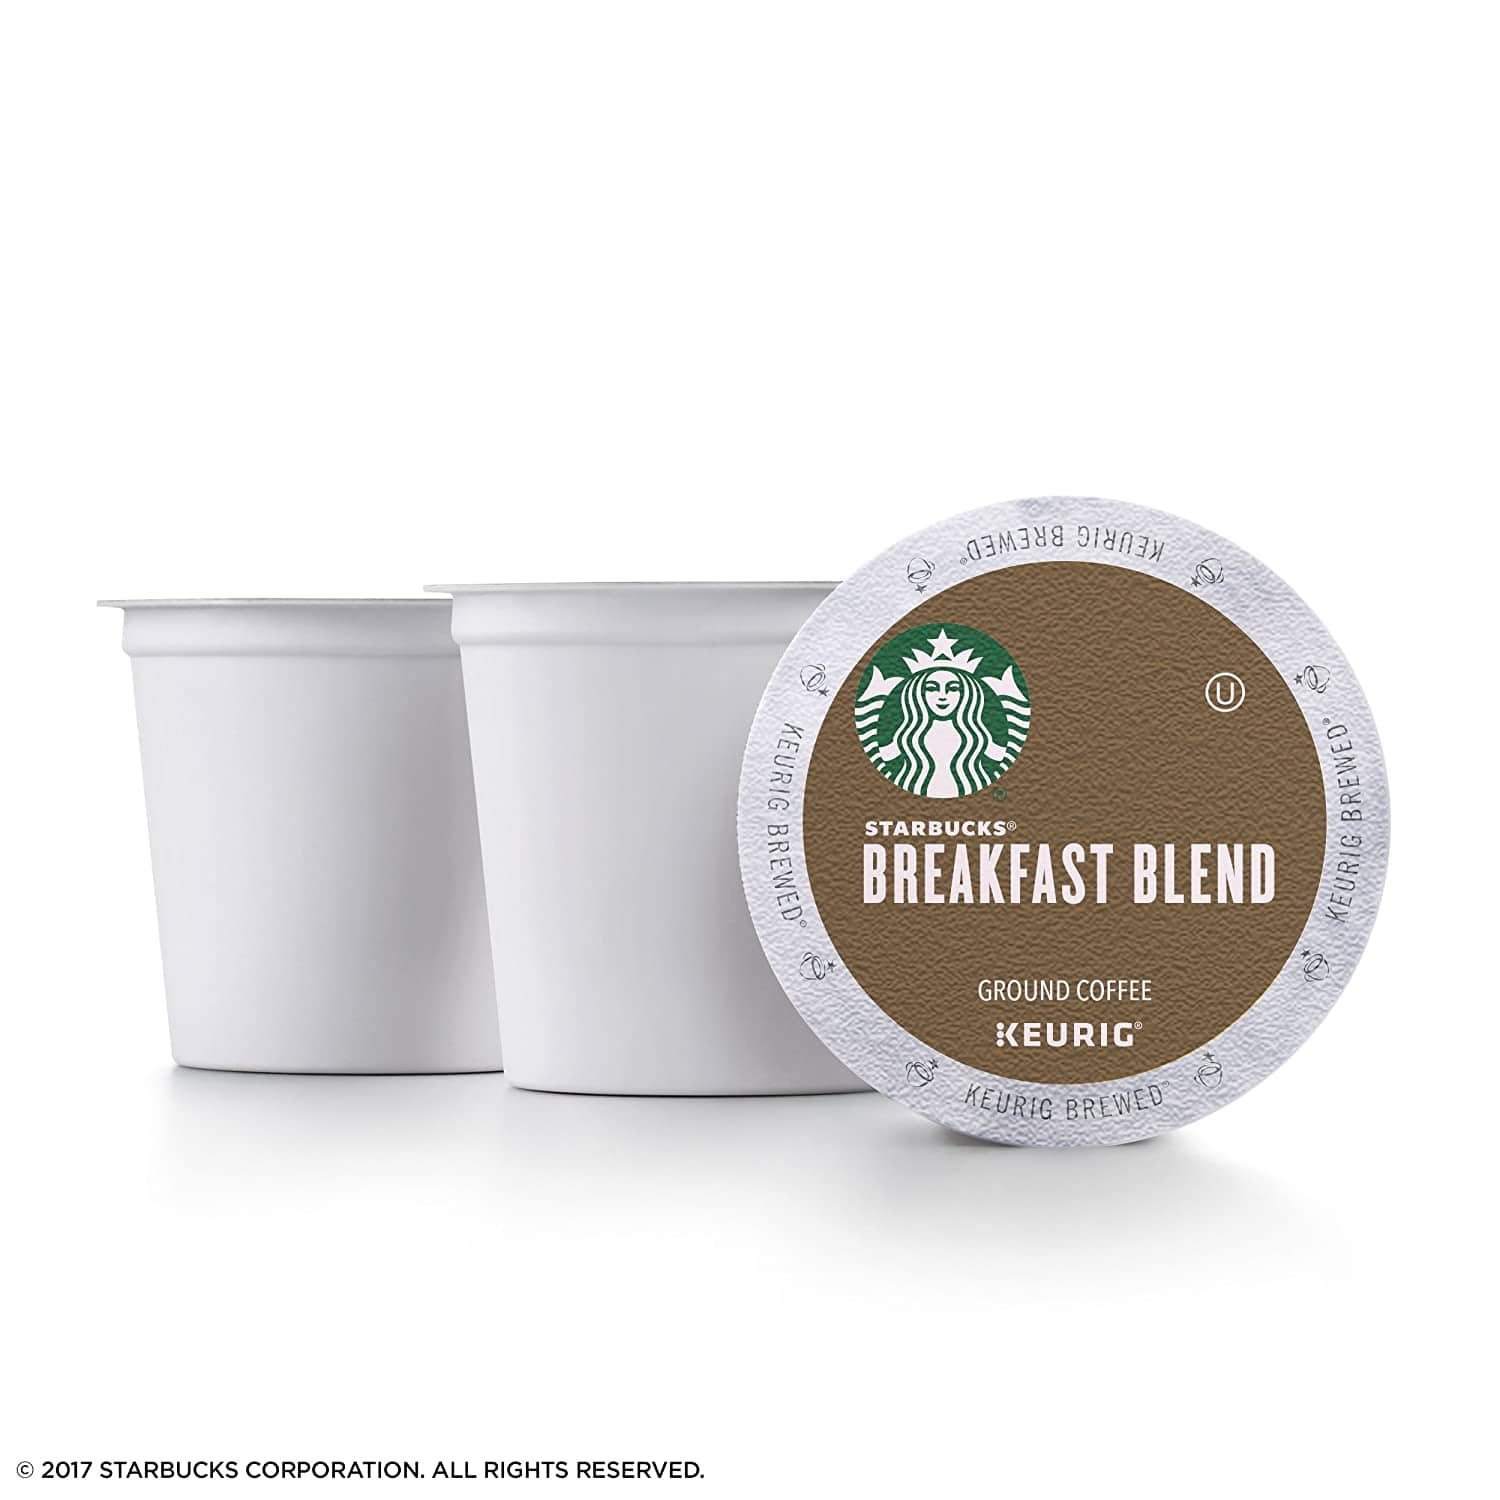 Starbucks 96ct Breakfast Blend k-cup $0.30/count Amazon Warehouse Deal (Hurry only 7 left) $28.75